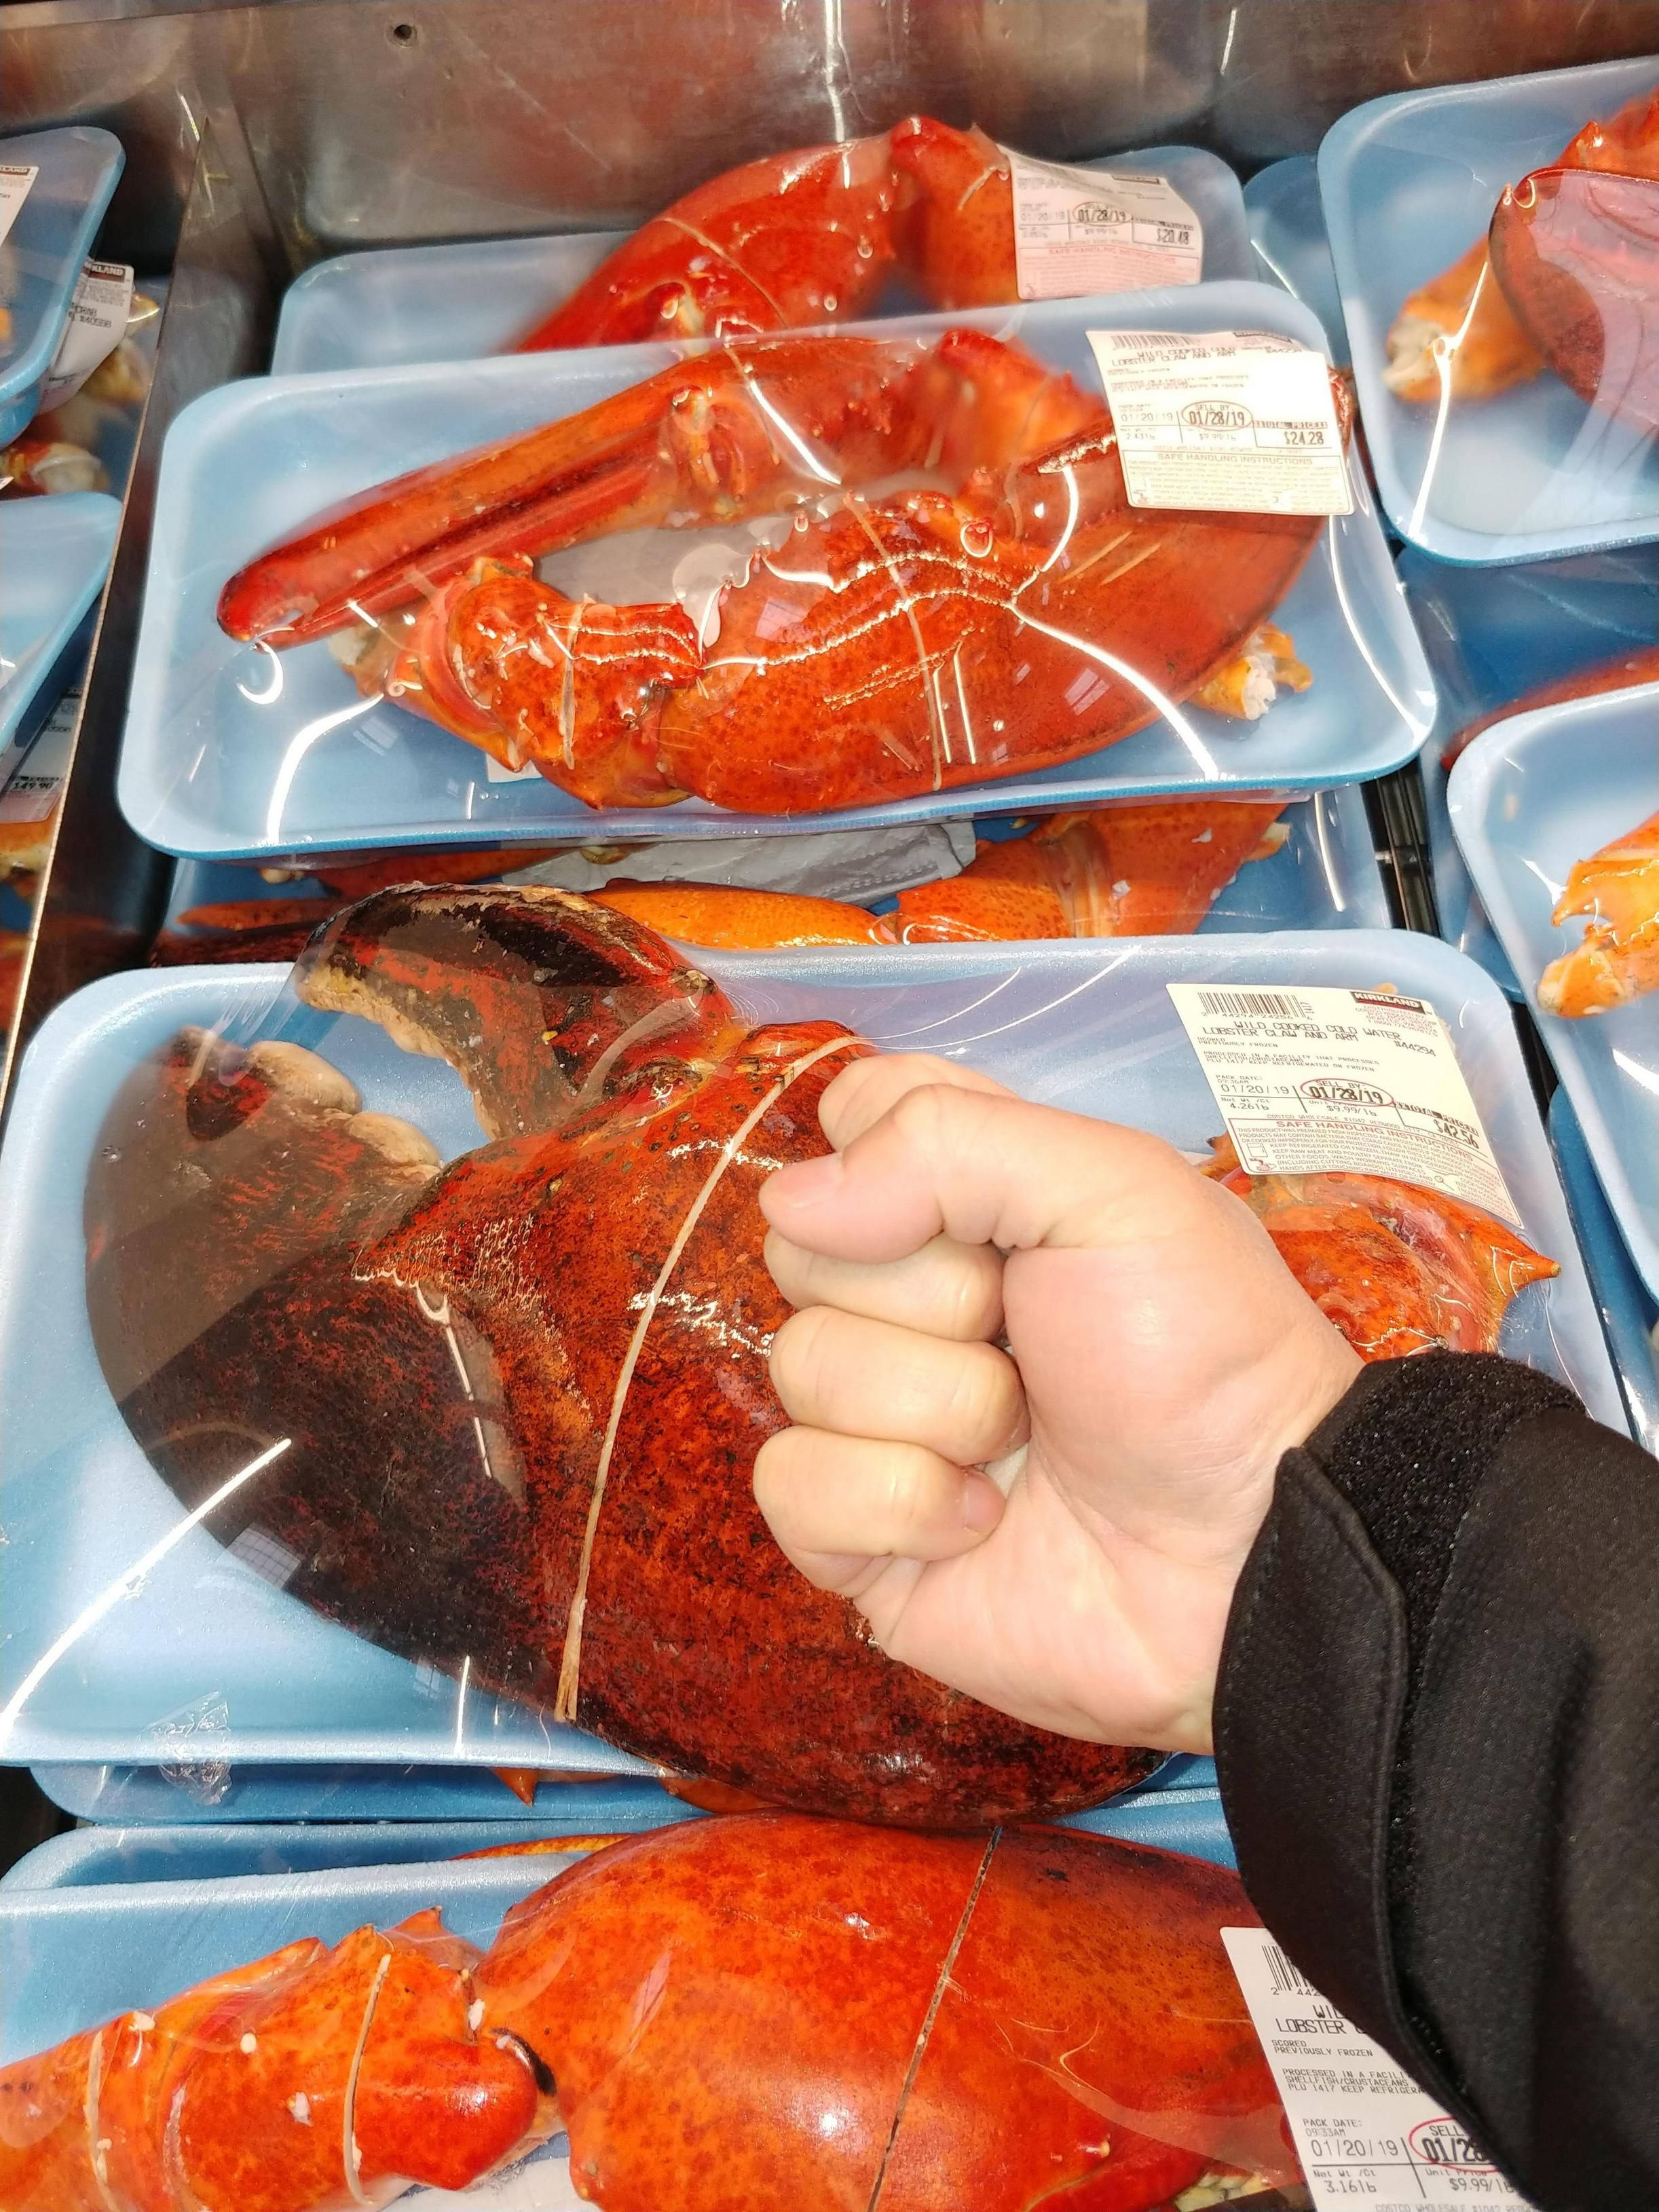 Select Costco Stores Have Massive 3-Pound Lobster Claws